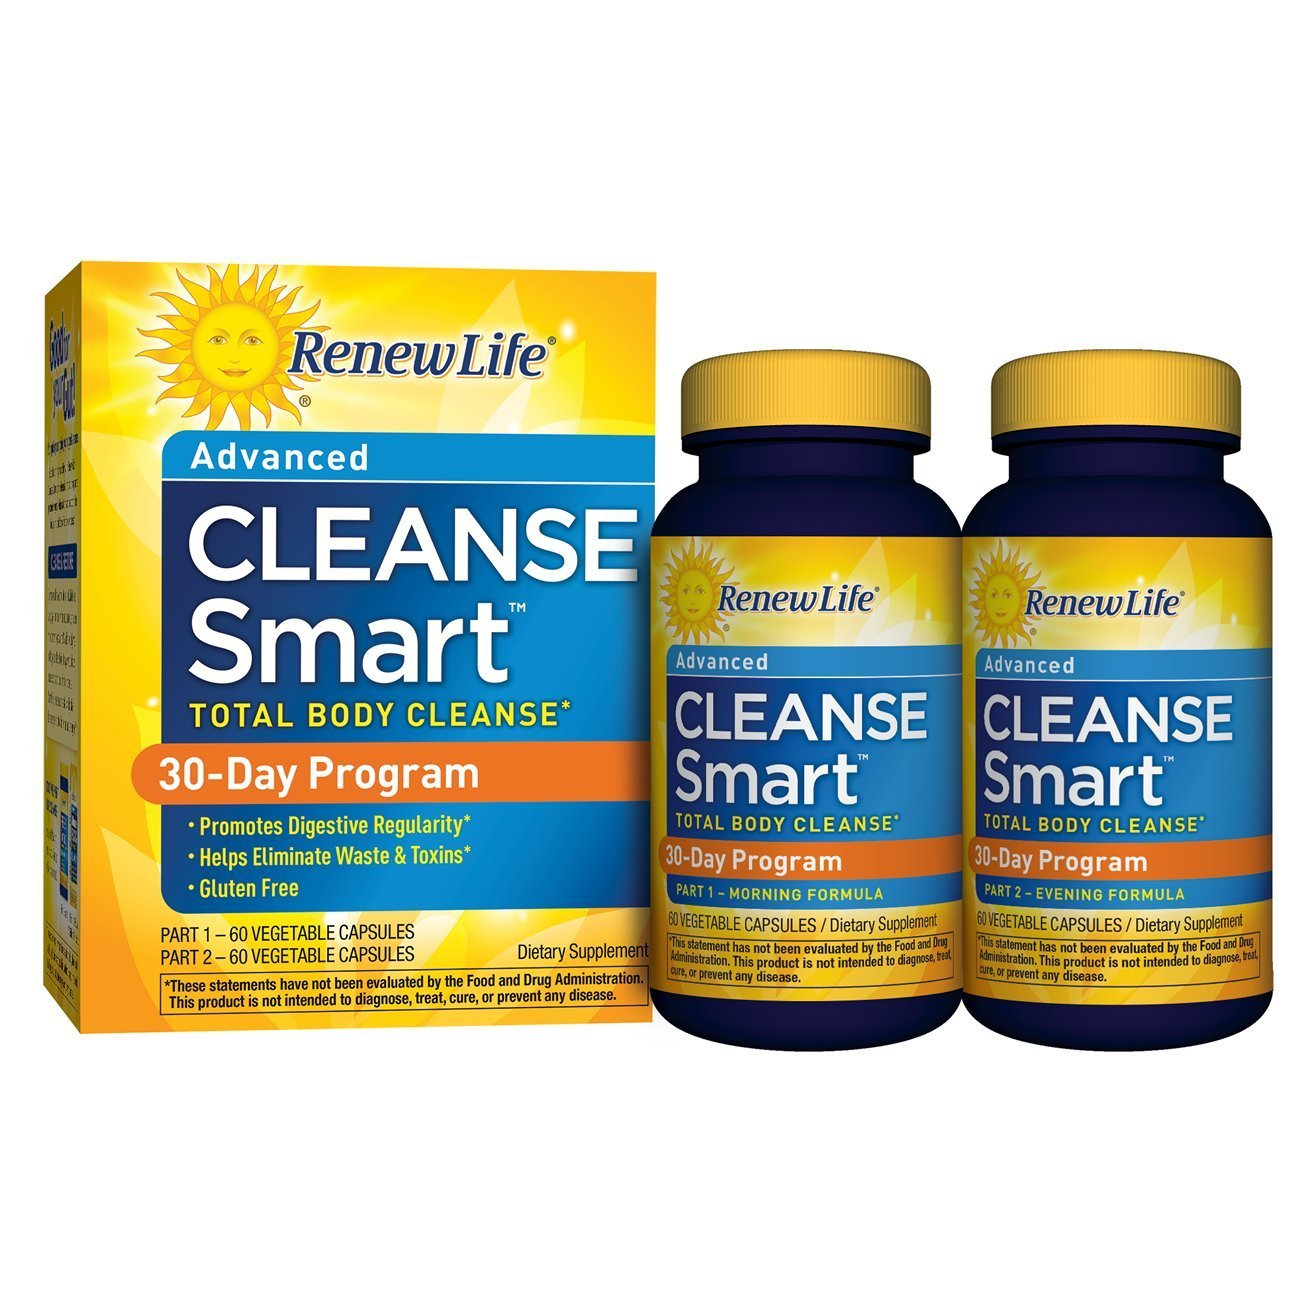 Renew Life Cleanse Smart Total Body Cleanse 30-Day Program - 2-Part Kit    Helps Eliminate Waste & Toxins   Detox